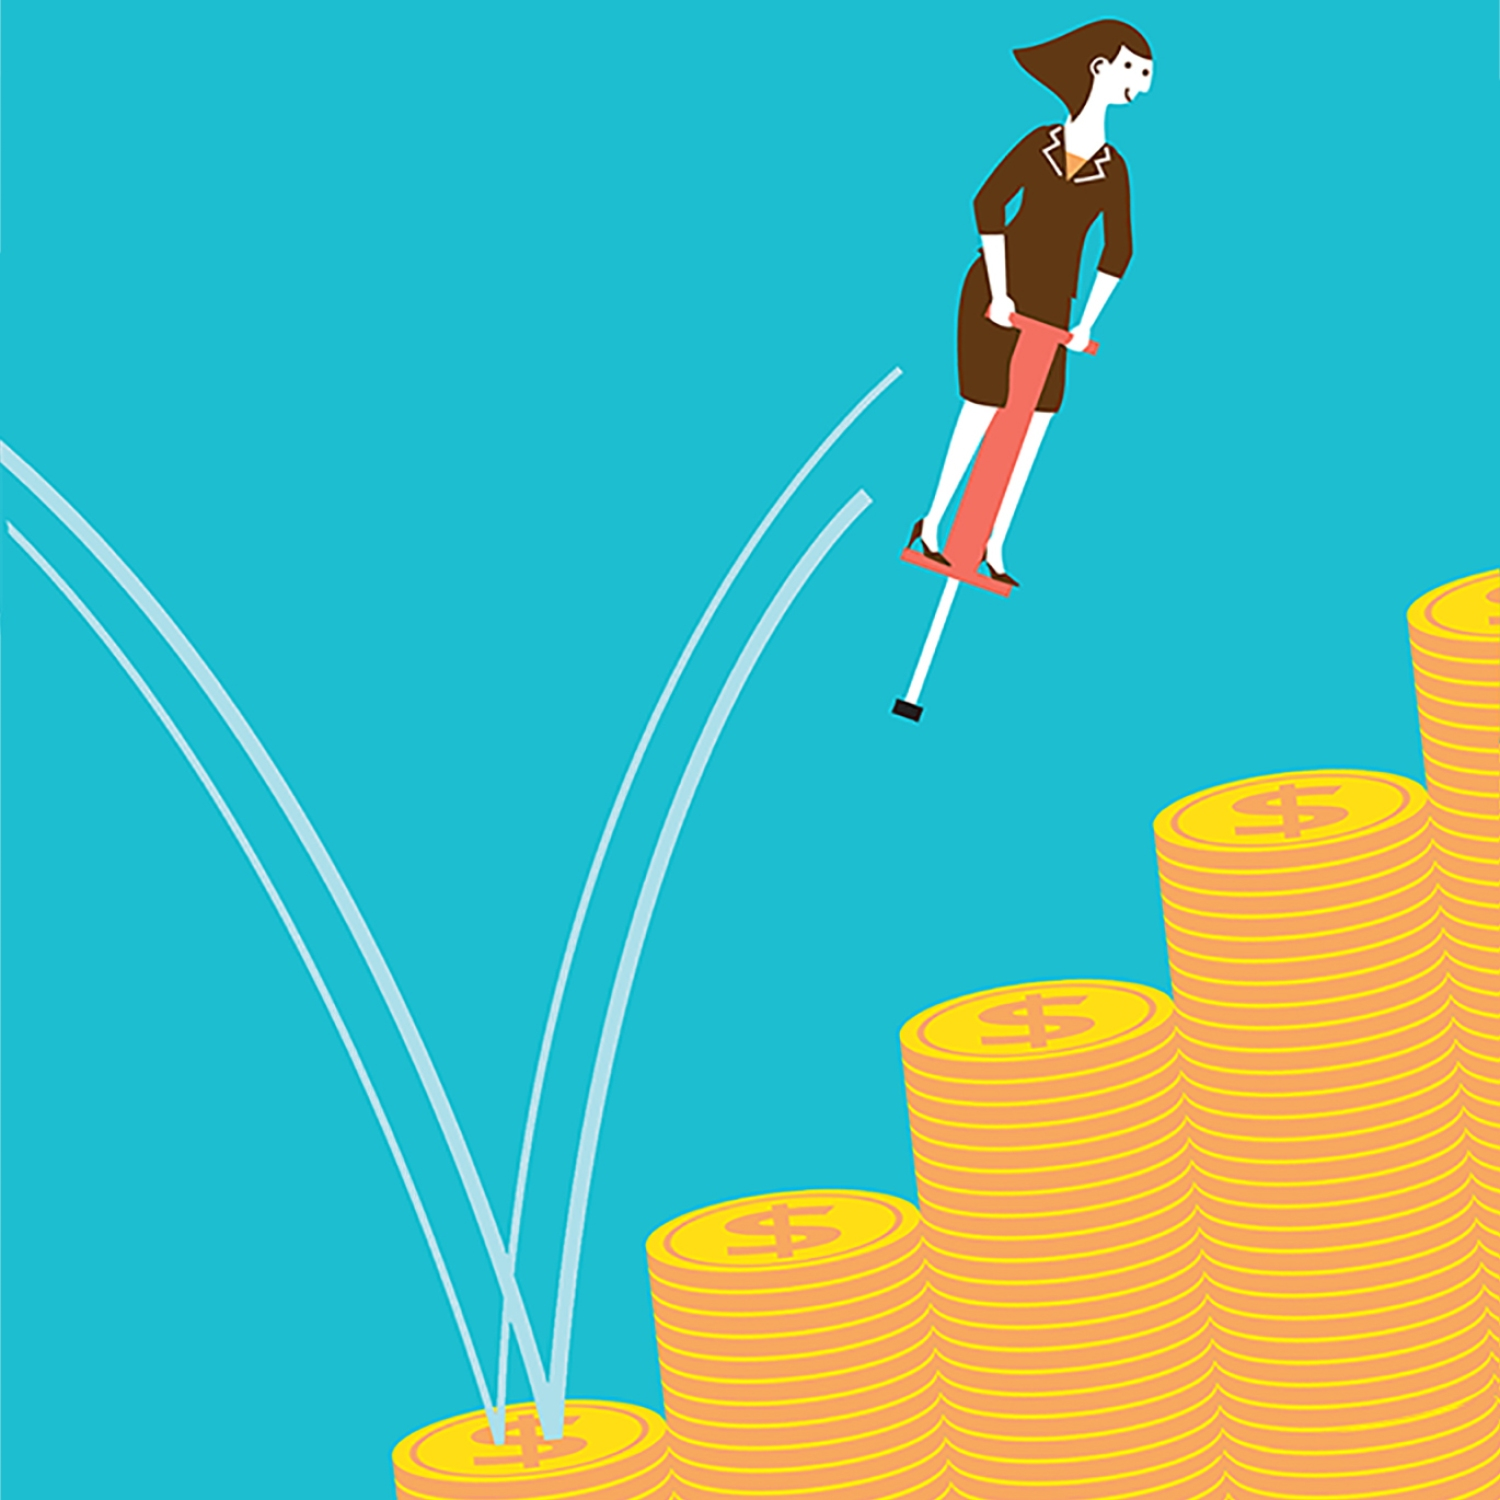 Illustration of woman on pogo stick bouncing on money piles